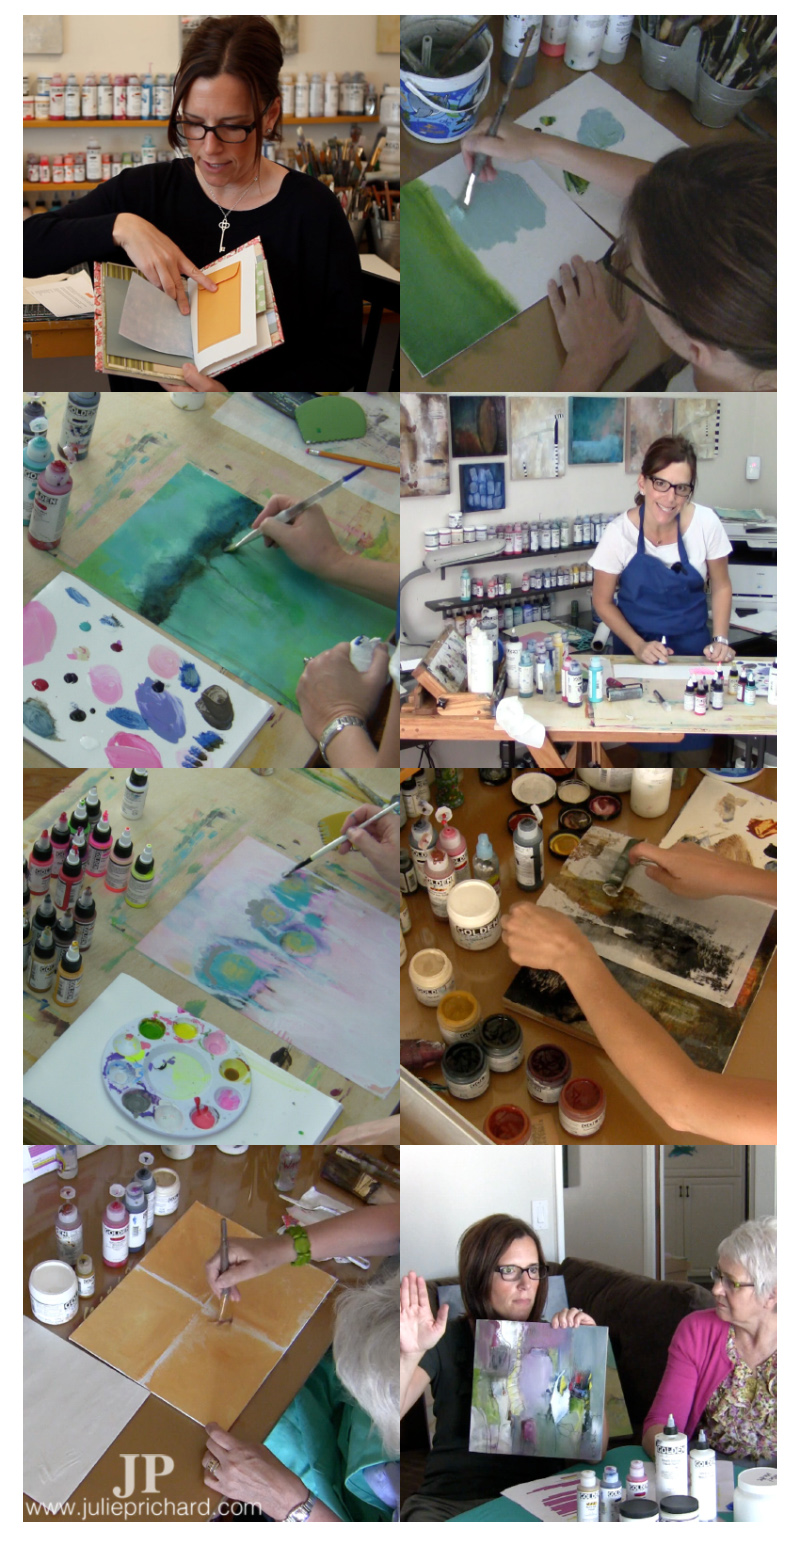 Stills taken from the videos for my online art workshops.